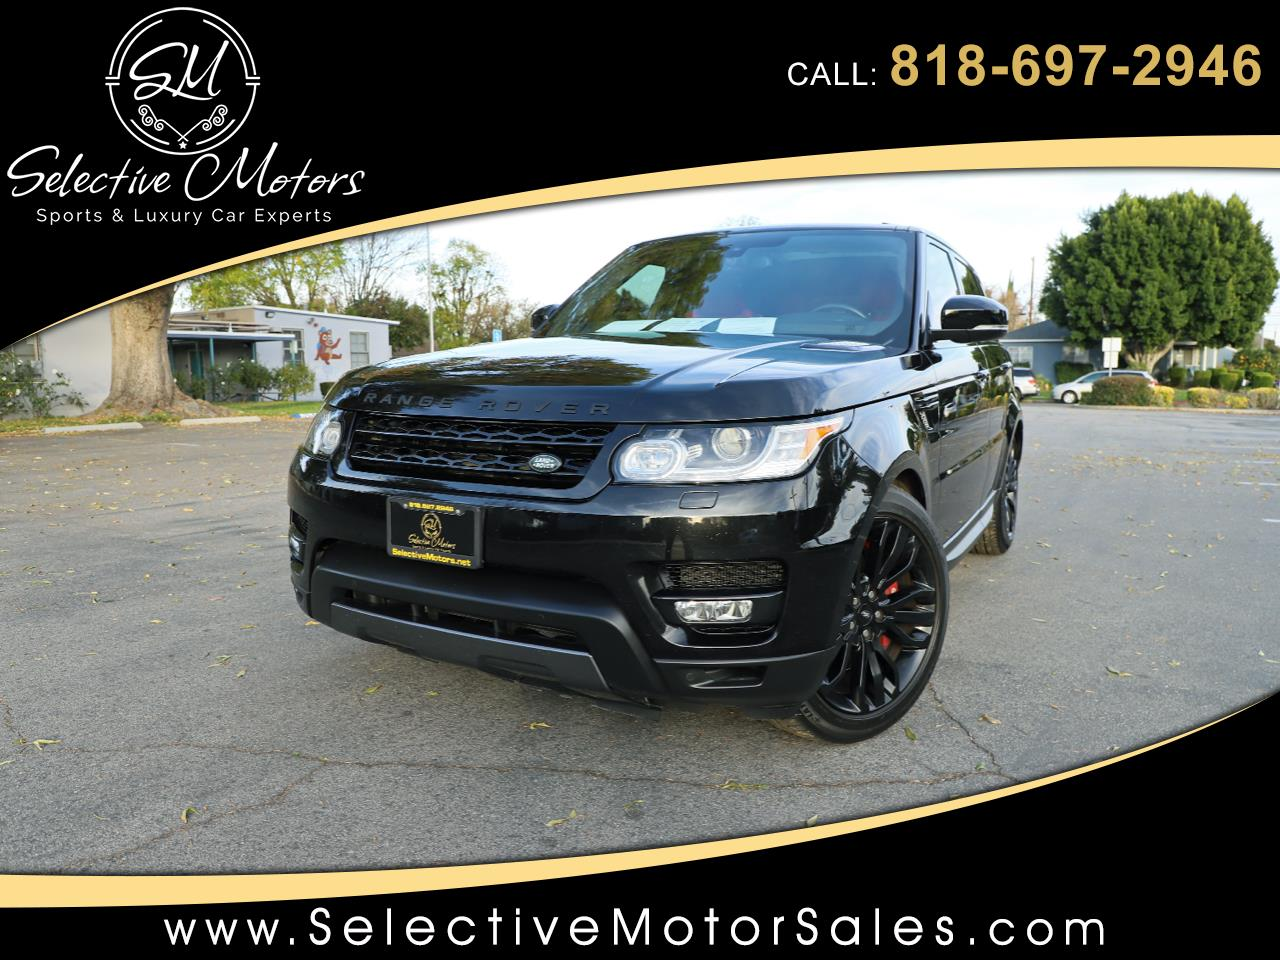 2016 Land Rover Range Rover Sport 5.0L v8 SuperCharged Limited Edition